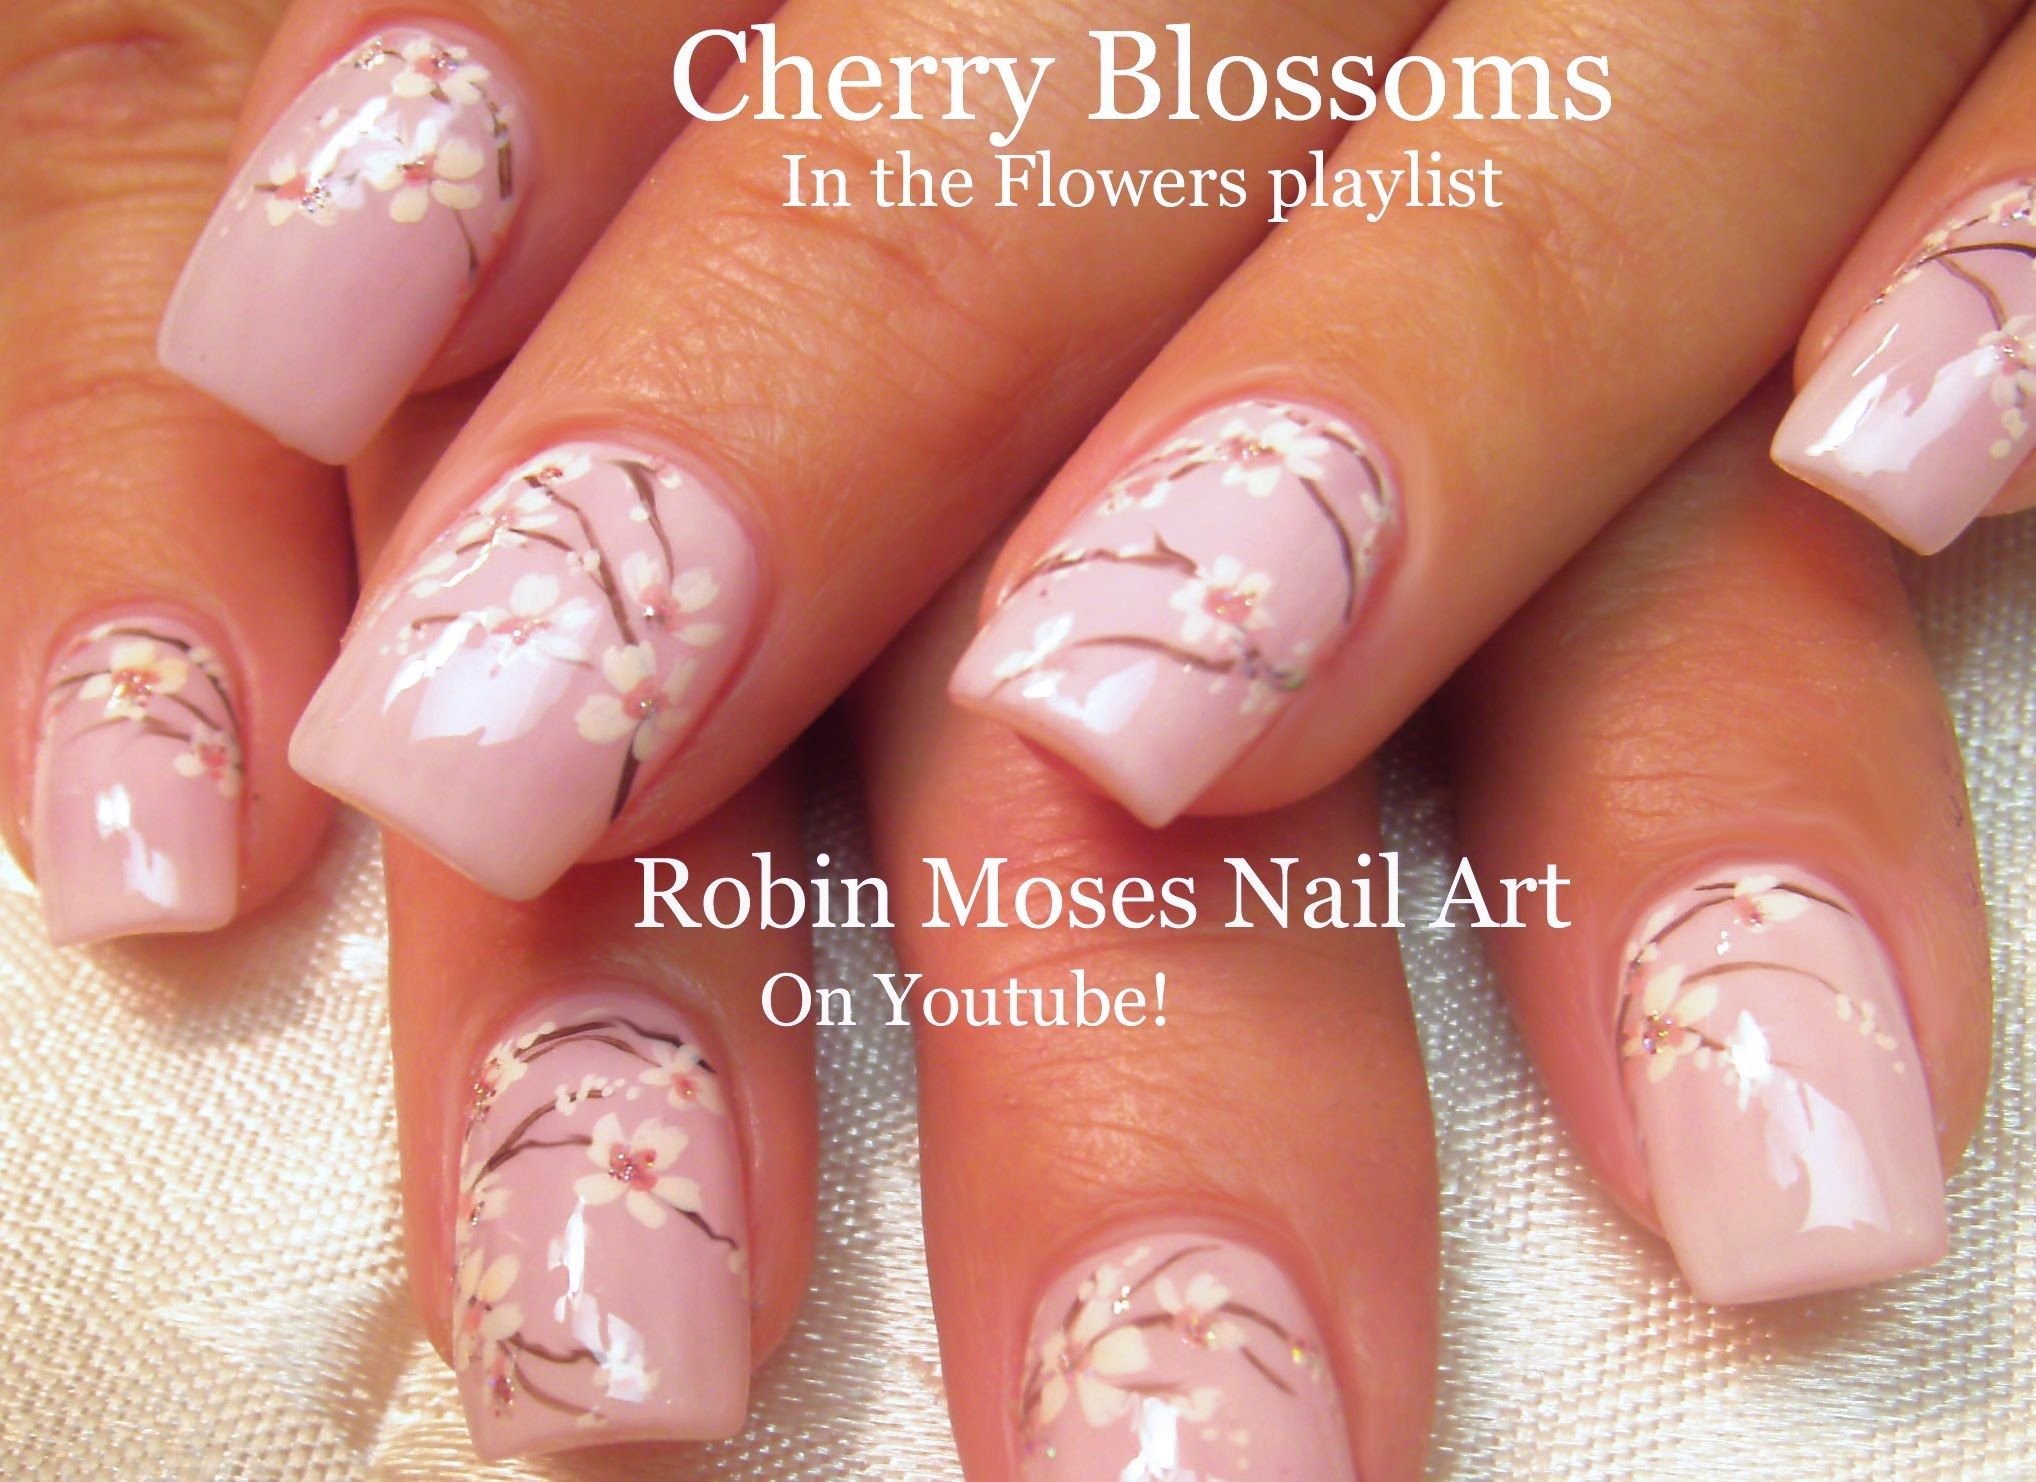 Cherry Blossom Nails Blush Pink Flower Nail Art Design Tutorial Cherry Blossom Nails Pink Flower Nails Floral Nail Art